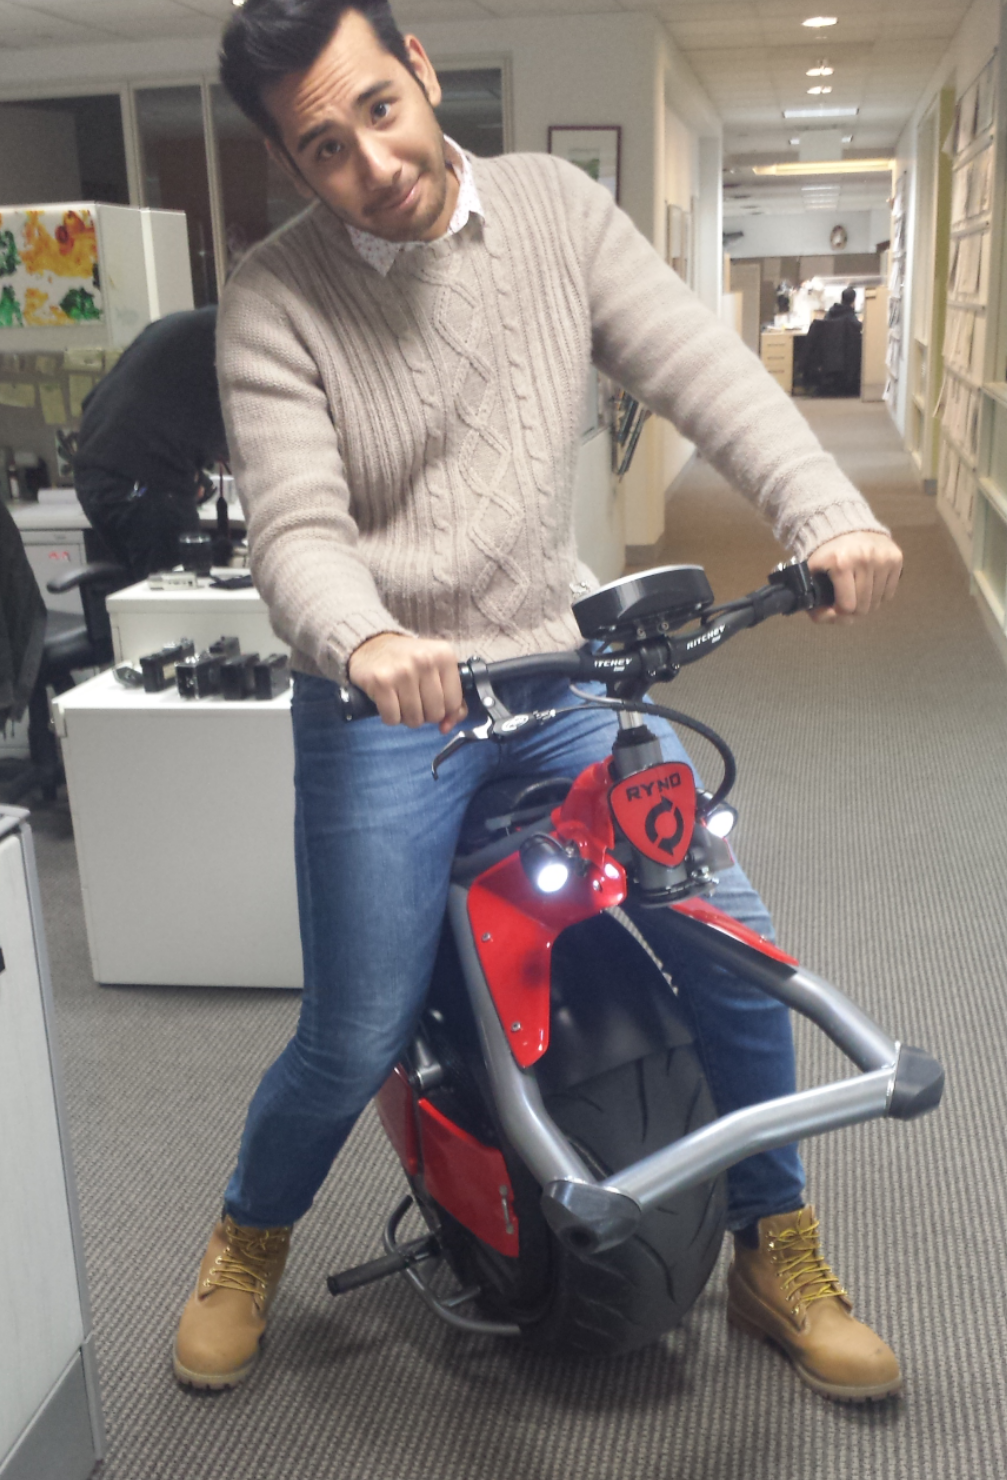 RT @gabebergado: Having a great time at the @PopSci office riding a one wheel motorcycle. #thefutureisnow http://t.co/ic97L4a1ku